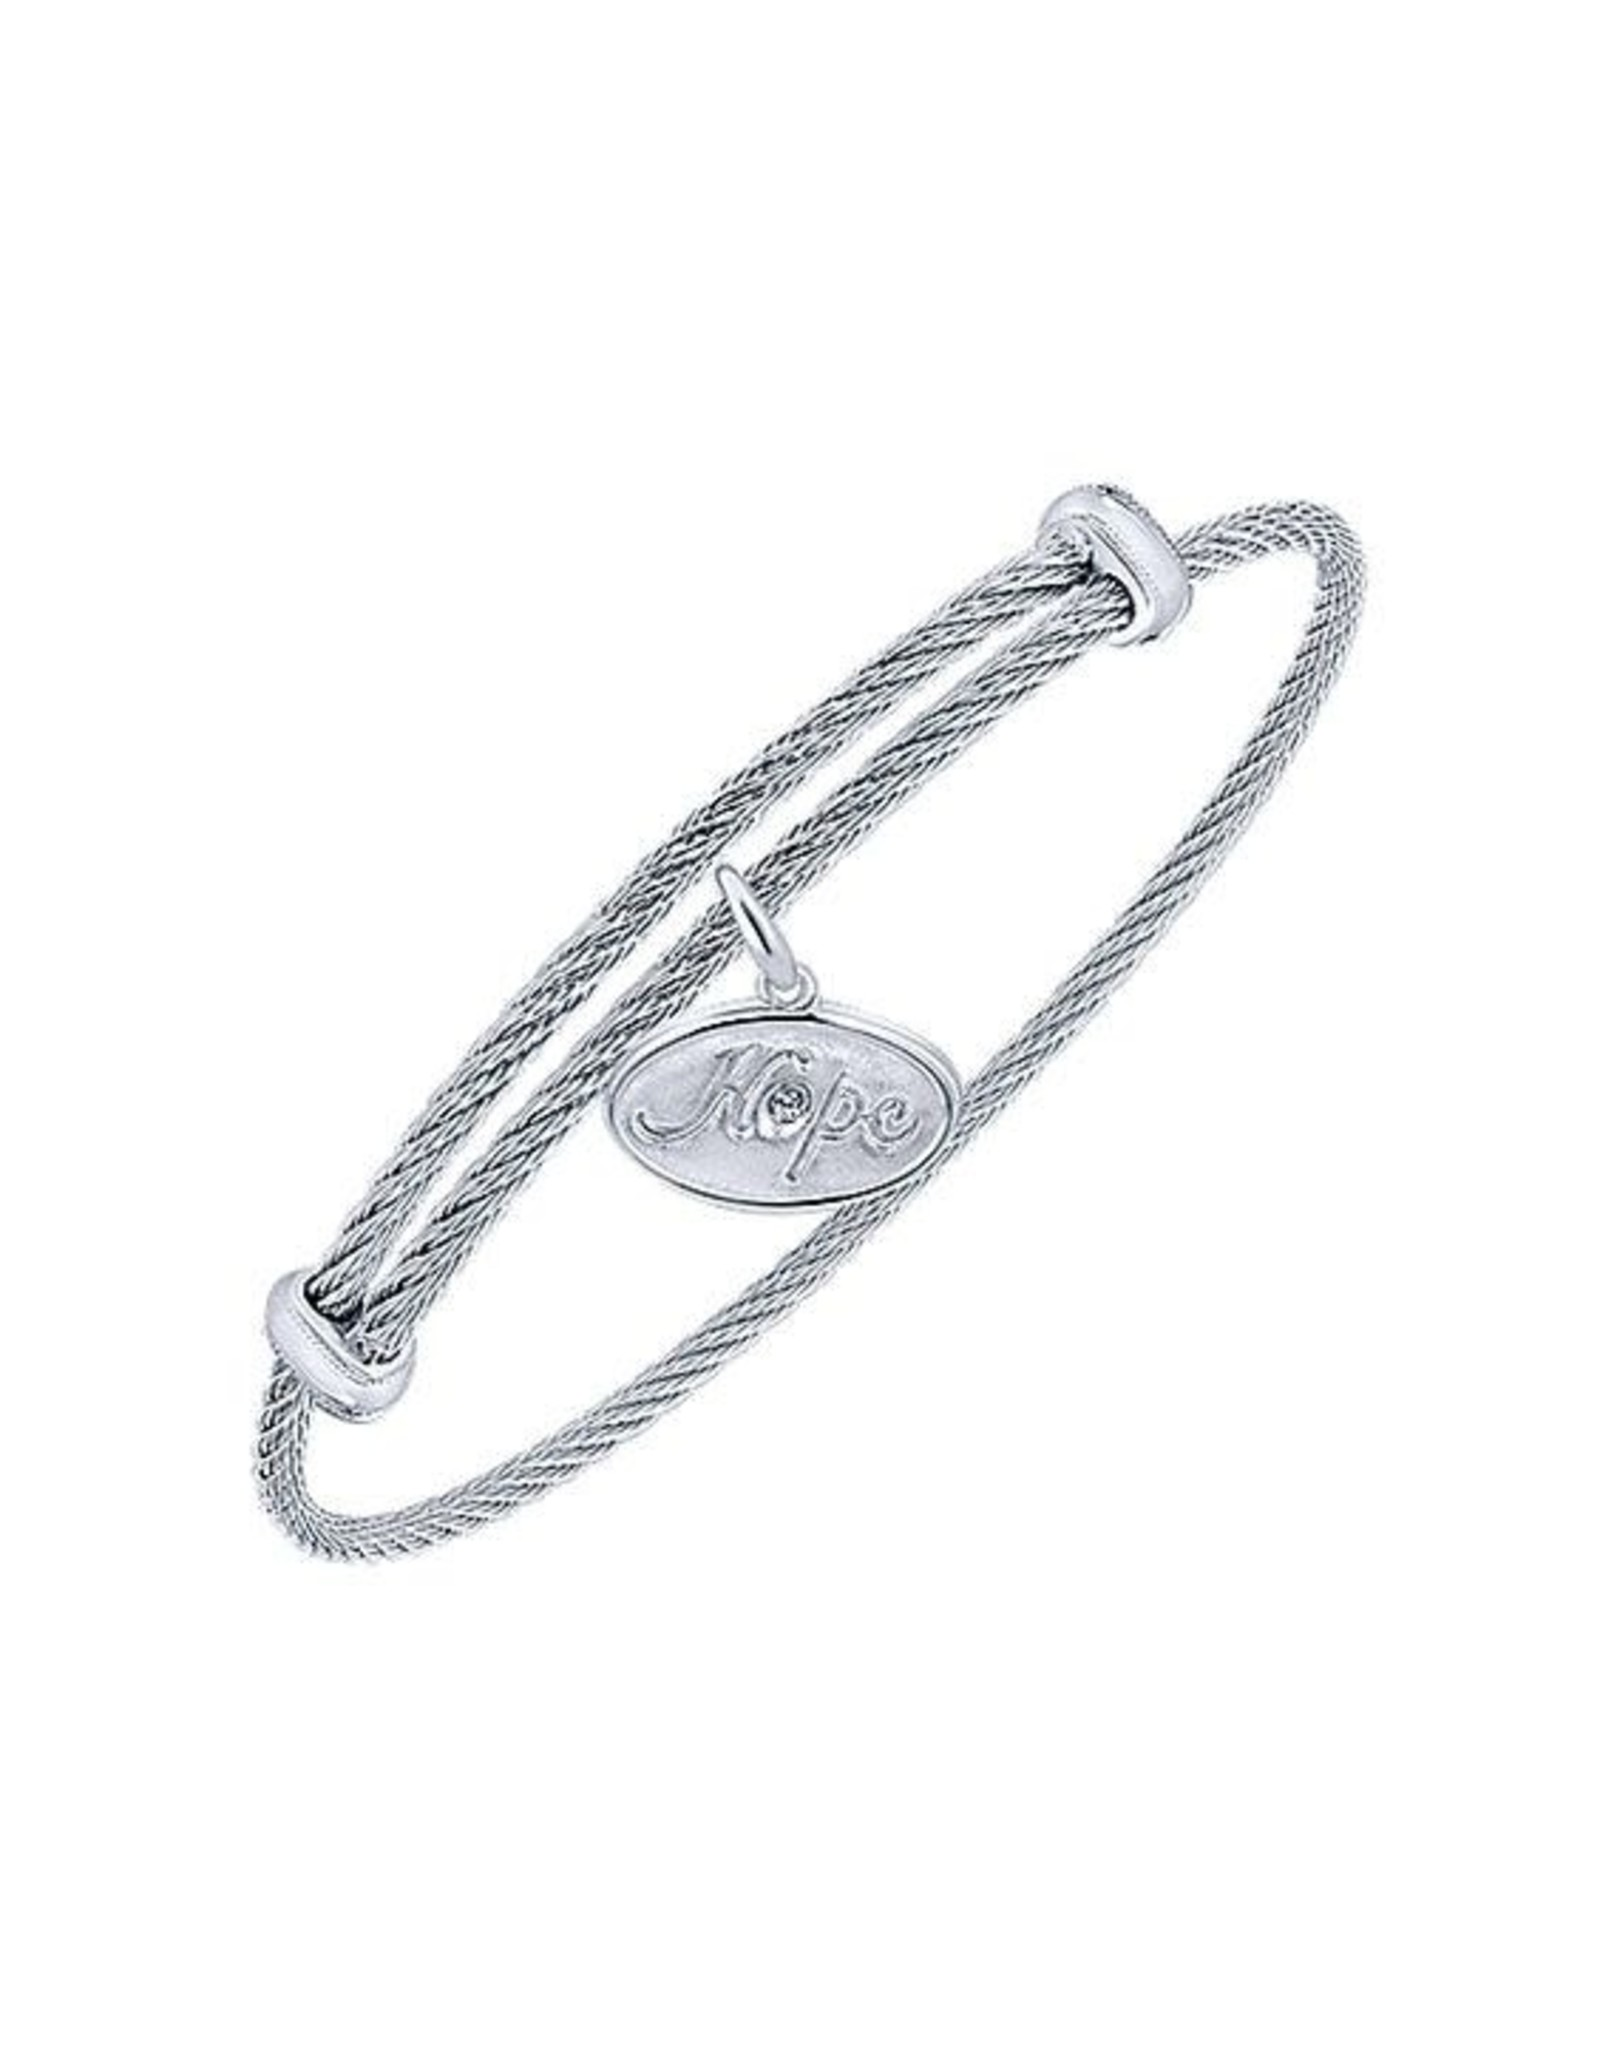 Adjustable Twisted Cable Stainless Steel Bangle Bracelet with Sterling Silver Diamond Hope Charm, D: 0.01cts